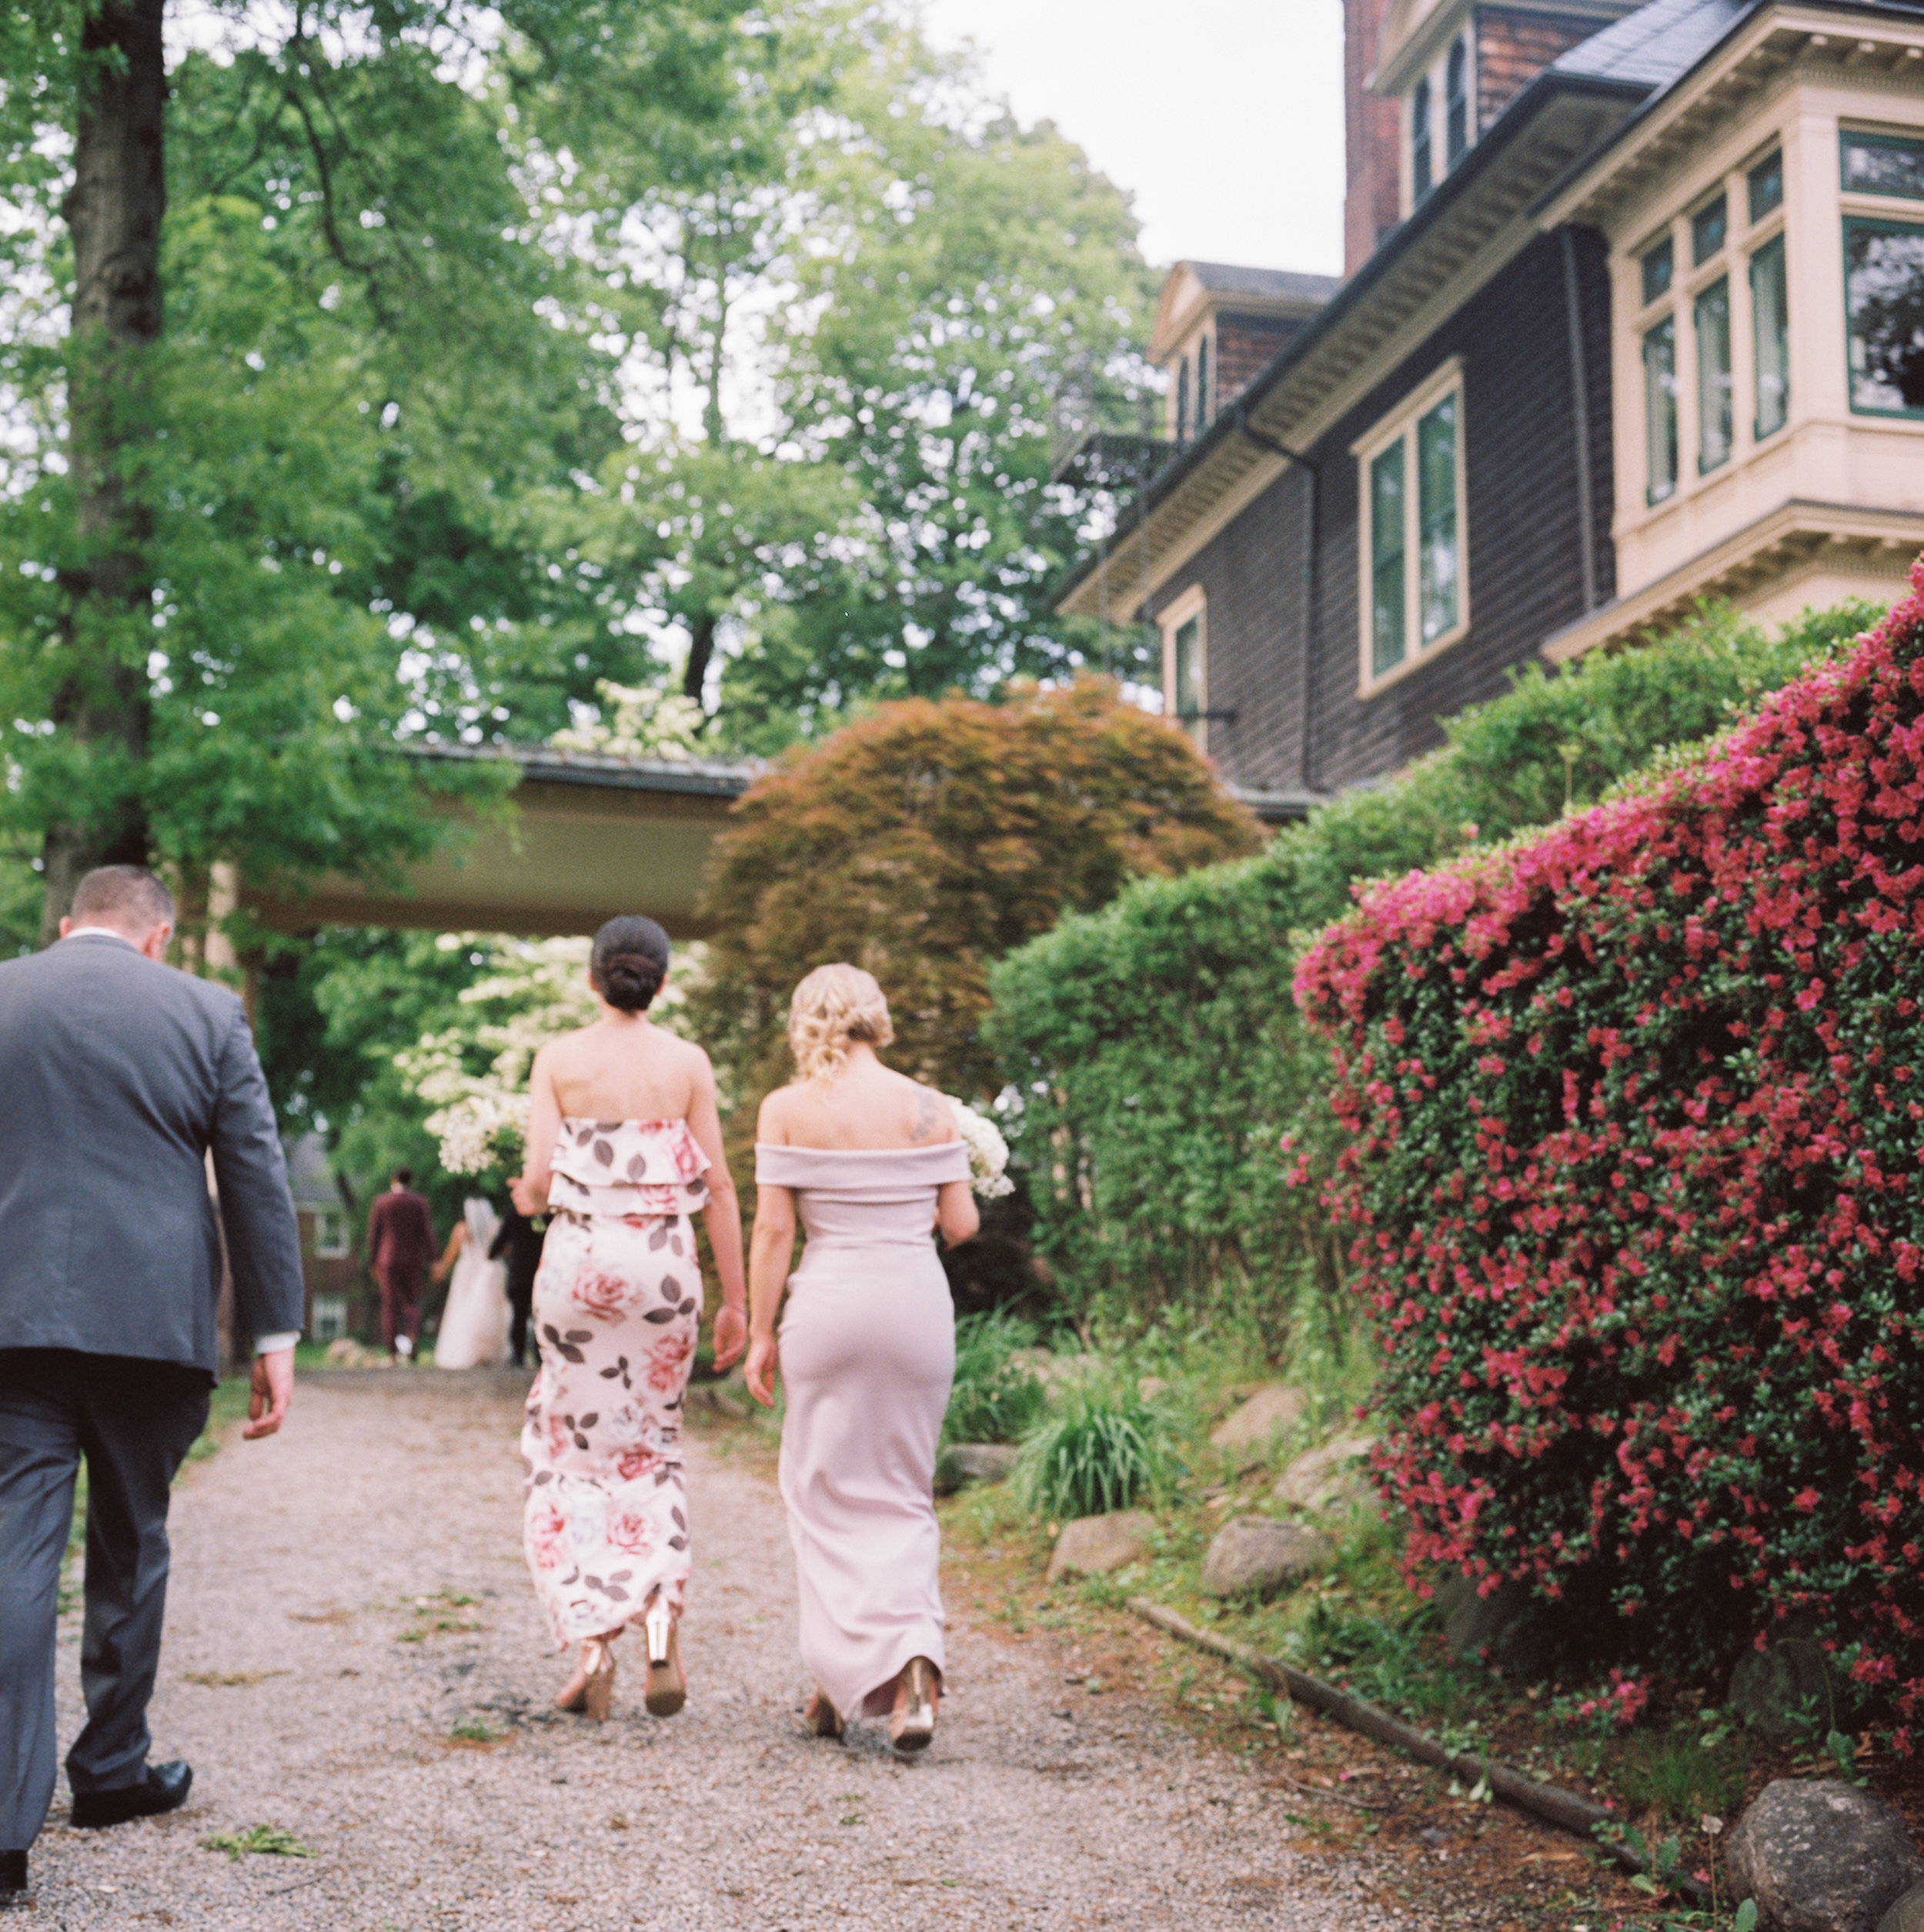 Mariangel+Kieran-Oakeside Mansion Wedding-Bloomfield New Jersey-Film Photography- Olivia Christina Photo-1 (25).JPG